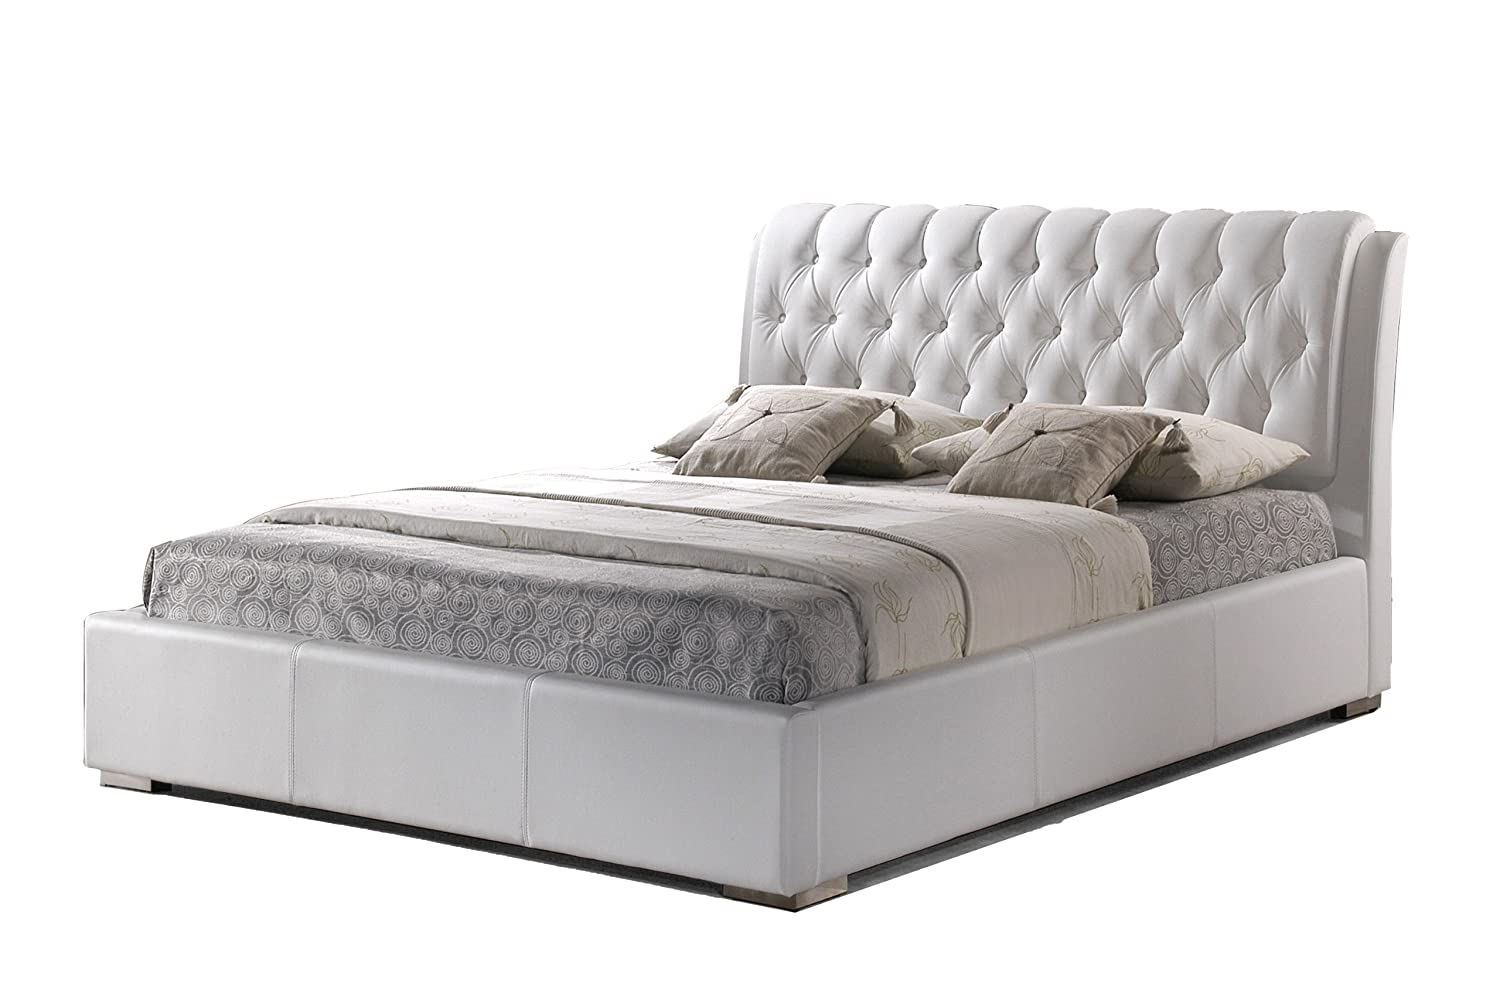 Deals For Prichard Plush Euro Pillowtop Queen Mattress